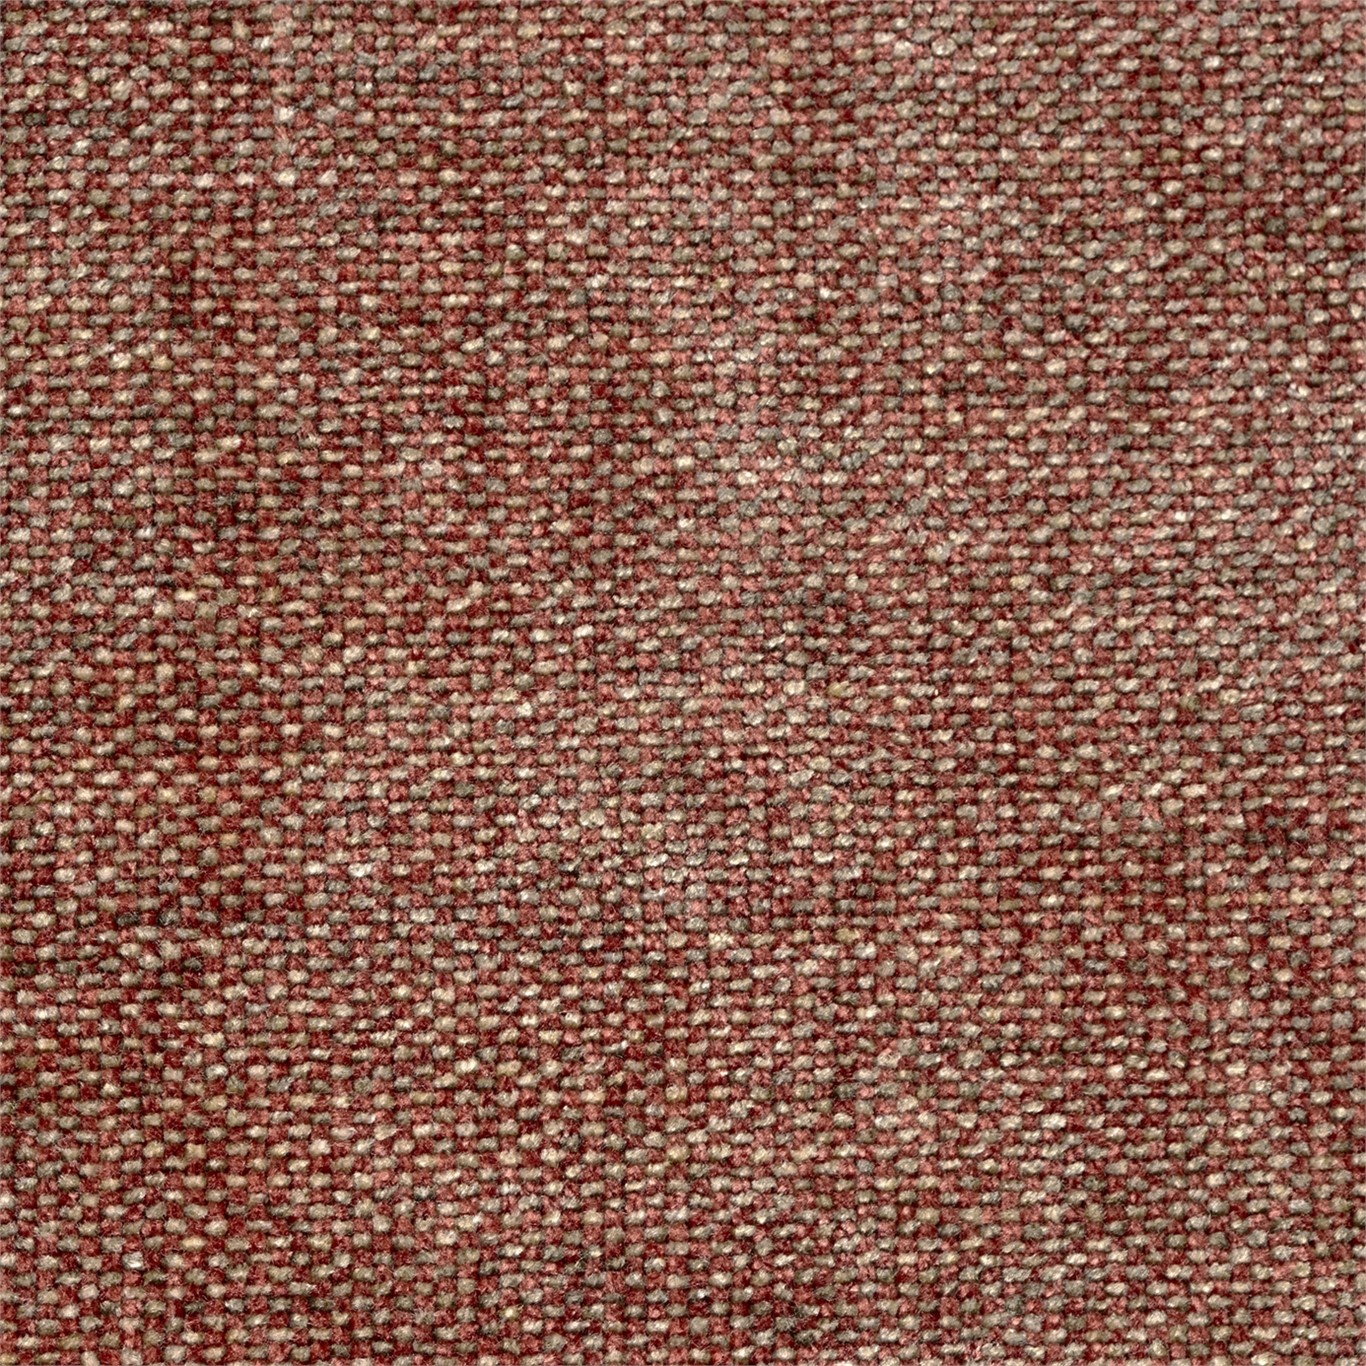 Image of Sanderson Moorbank Ginger Fabric 236317